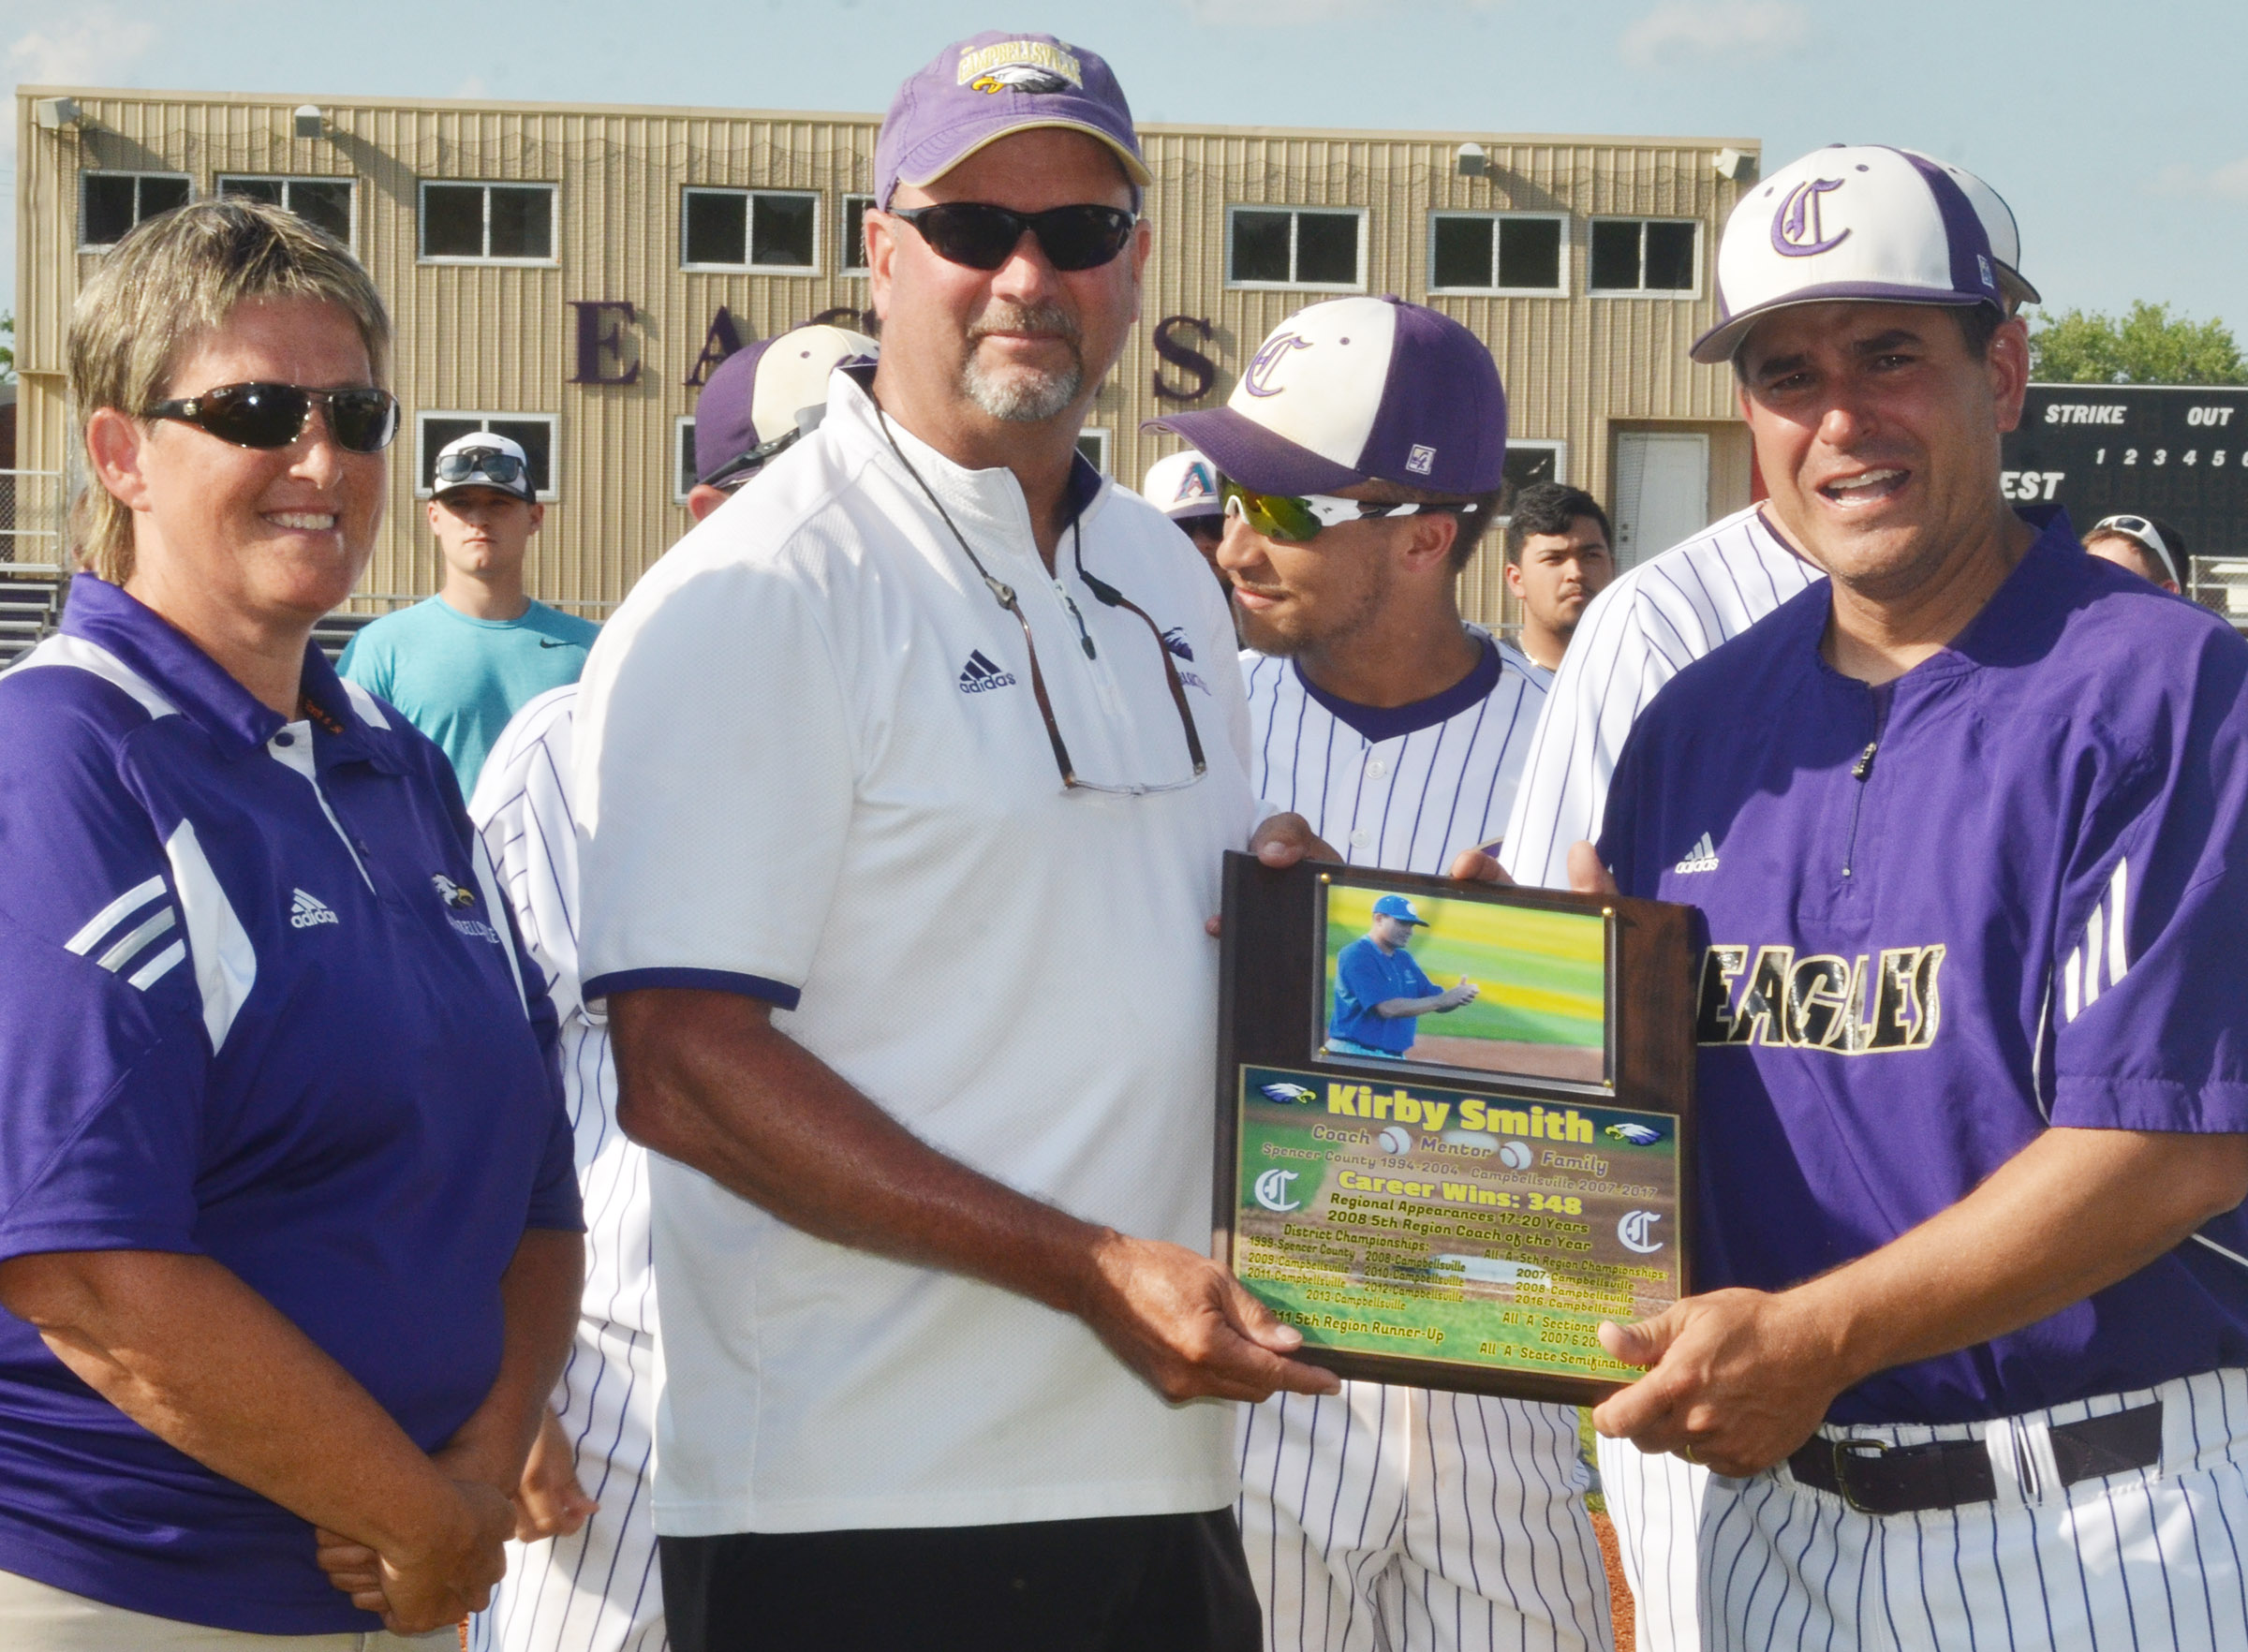 CHS head baseball coach Kirby Smith is honored for completing his 11th season leading the Eagles. Athletic Director Tim Davis, center, and Assistant Athletic Director Katie Wilkerson presented him with a plaque and many of his former players surprised him by attending the ceremony.